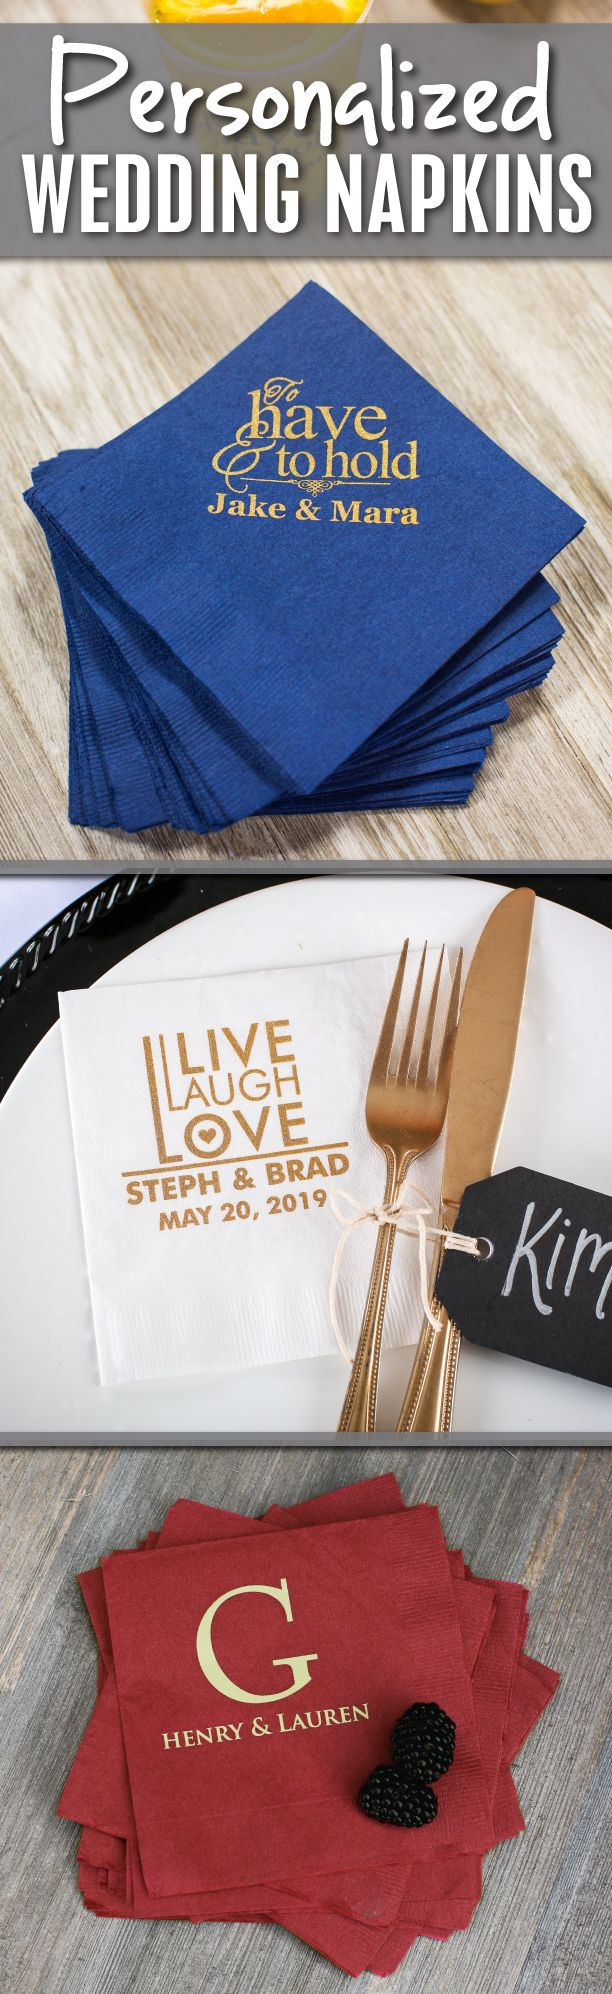 Add an elegant touch to your wedding with our personalized wedding #napkins!  Submit your own artwork or choose from our library of stock wedding artwork designs to personalize for your wedding!  Your options are endless as we offer a variety of styles, sizes & colors of napkins to coordinate and compliment any wedding!